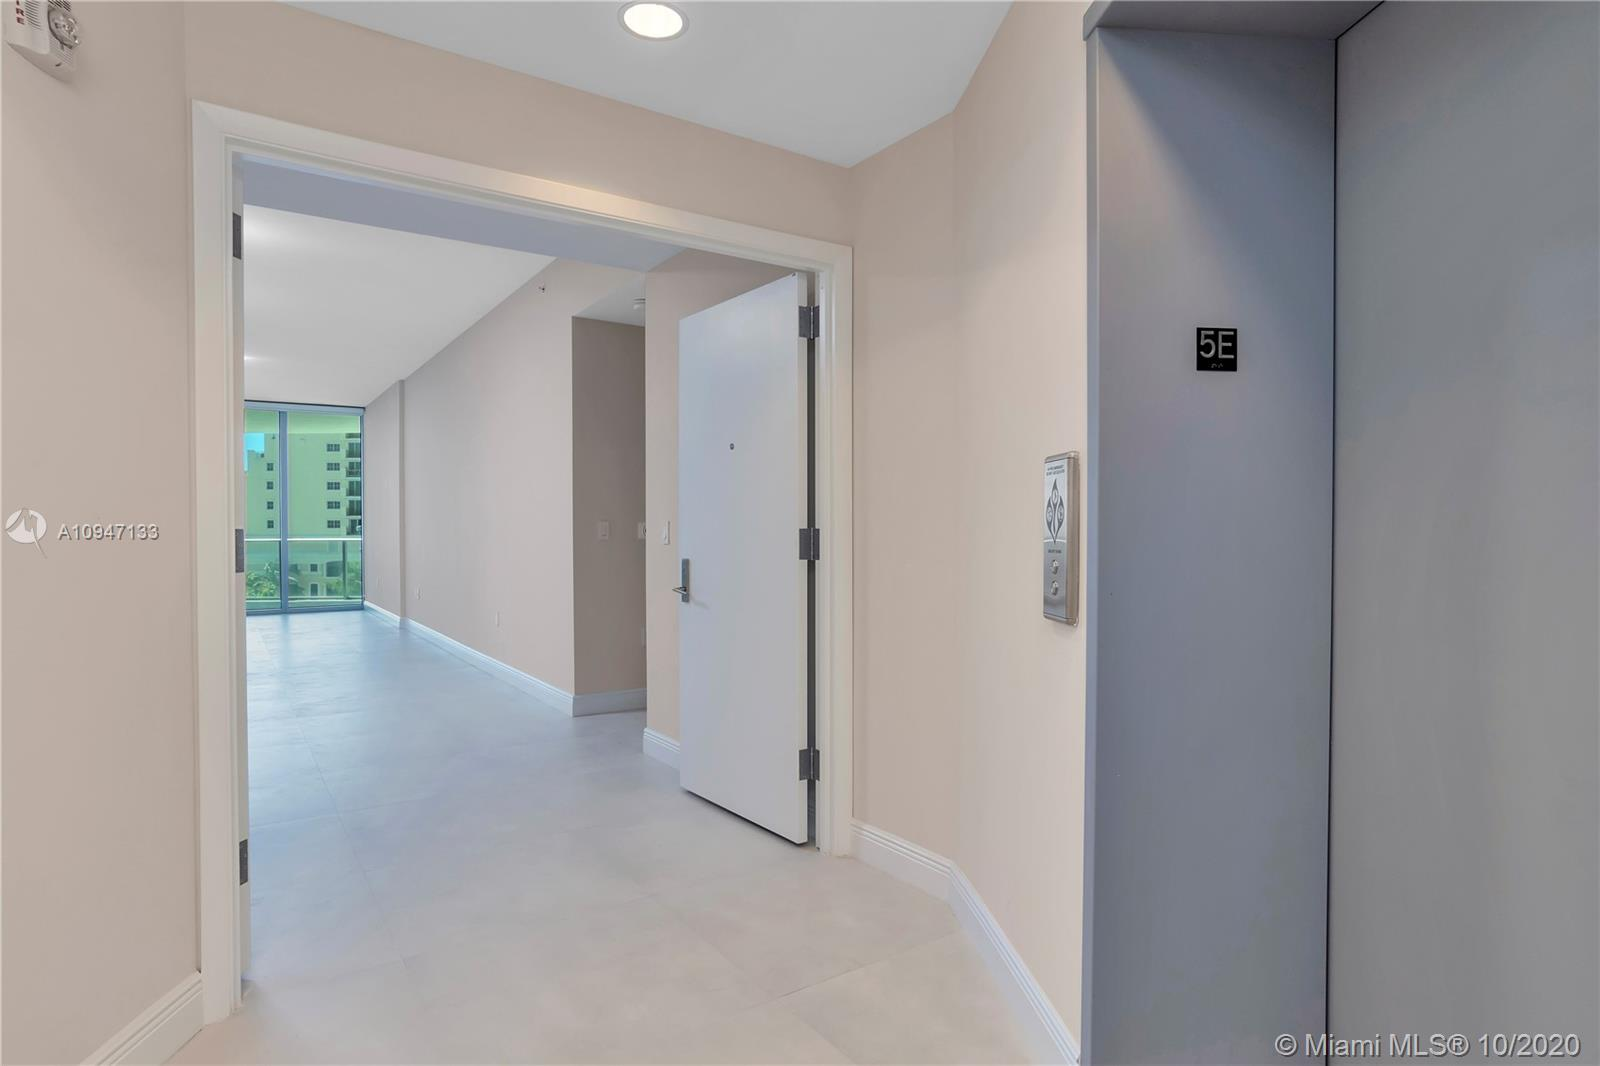 701 N Fort Lauderdale Blvd #503 photo03